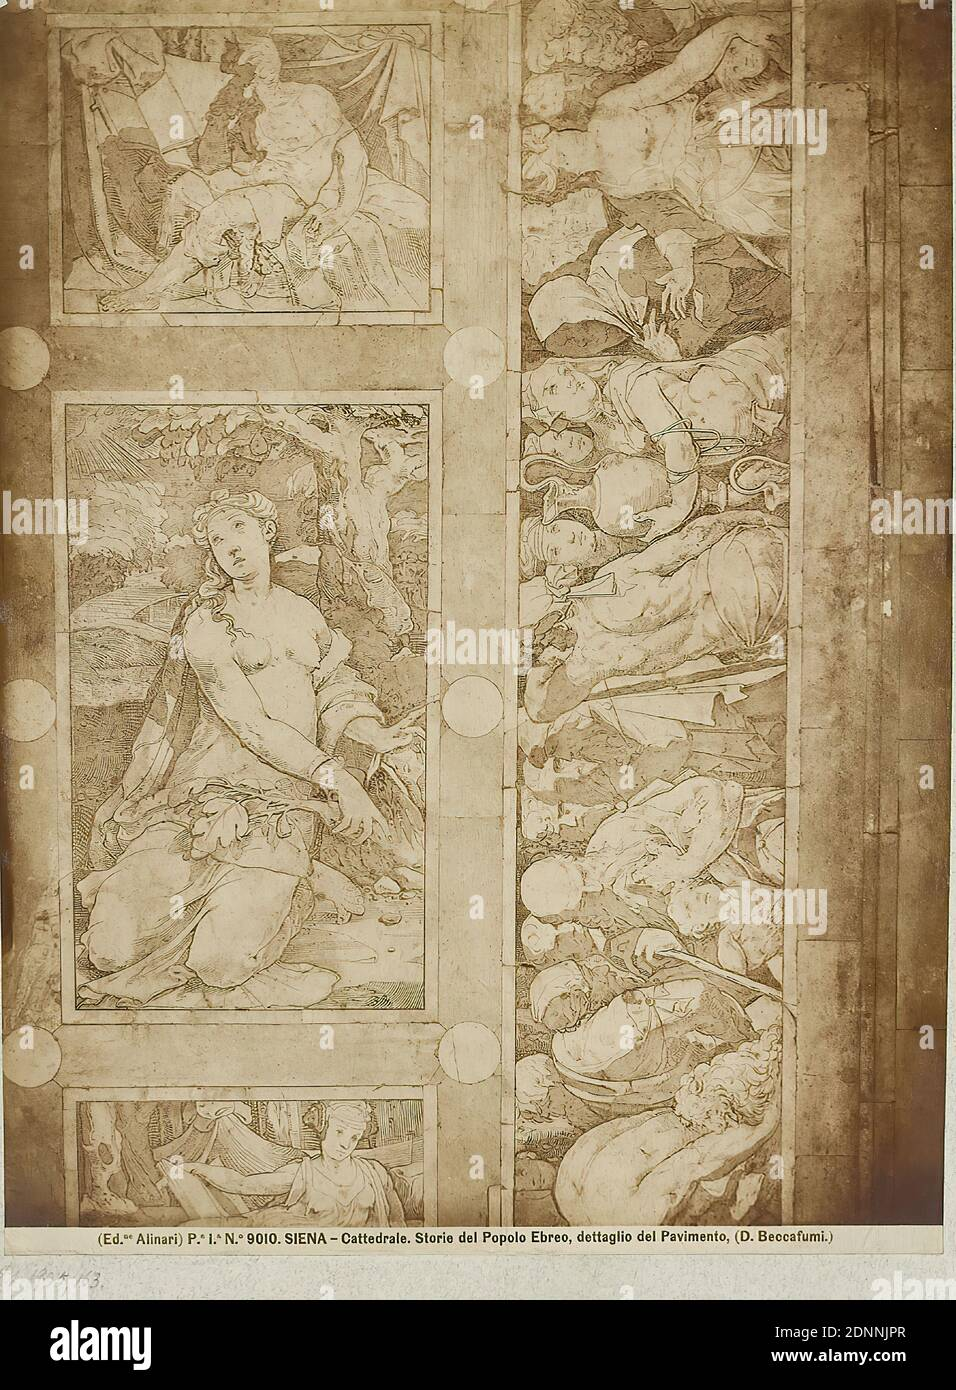 Domenico Beccafumi: Stories of the People of Israel, detail of the floor in the Cathedral of Siena, albumin paper, black and white positive process, image size: height: 25,50 cm; width: 19,10 cm, SIENA - Cattedrale. Storie del Popolo Ebreo, dettaglio del Pavimento. (D. Beccafumi.), Old Testament, floor (architecture), art Stock Photo